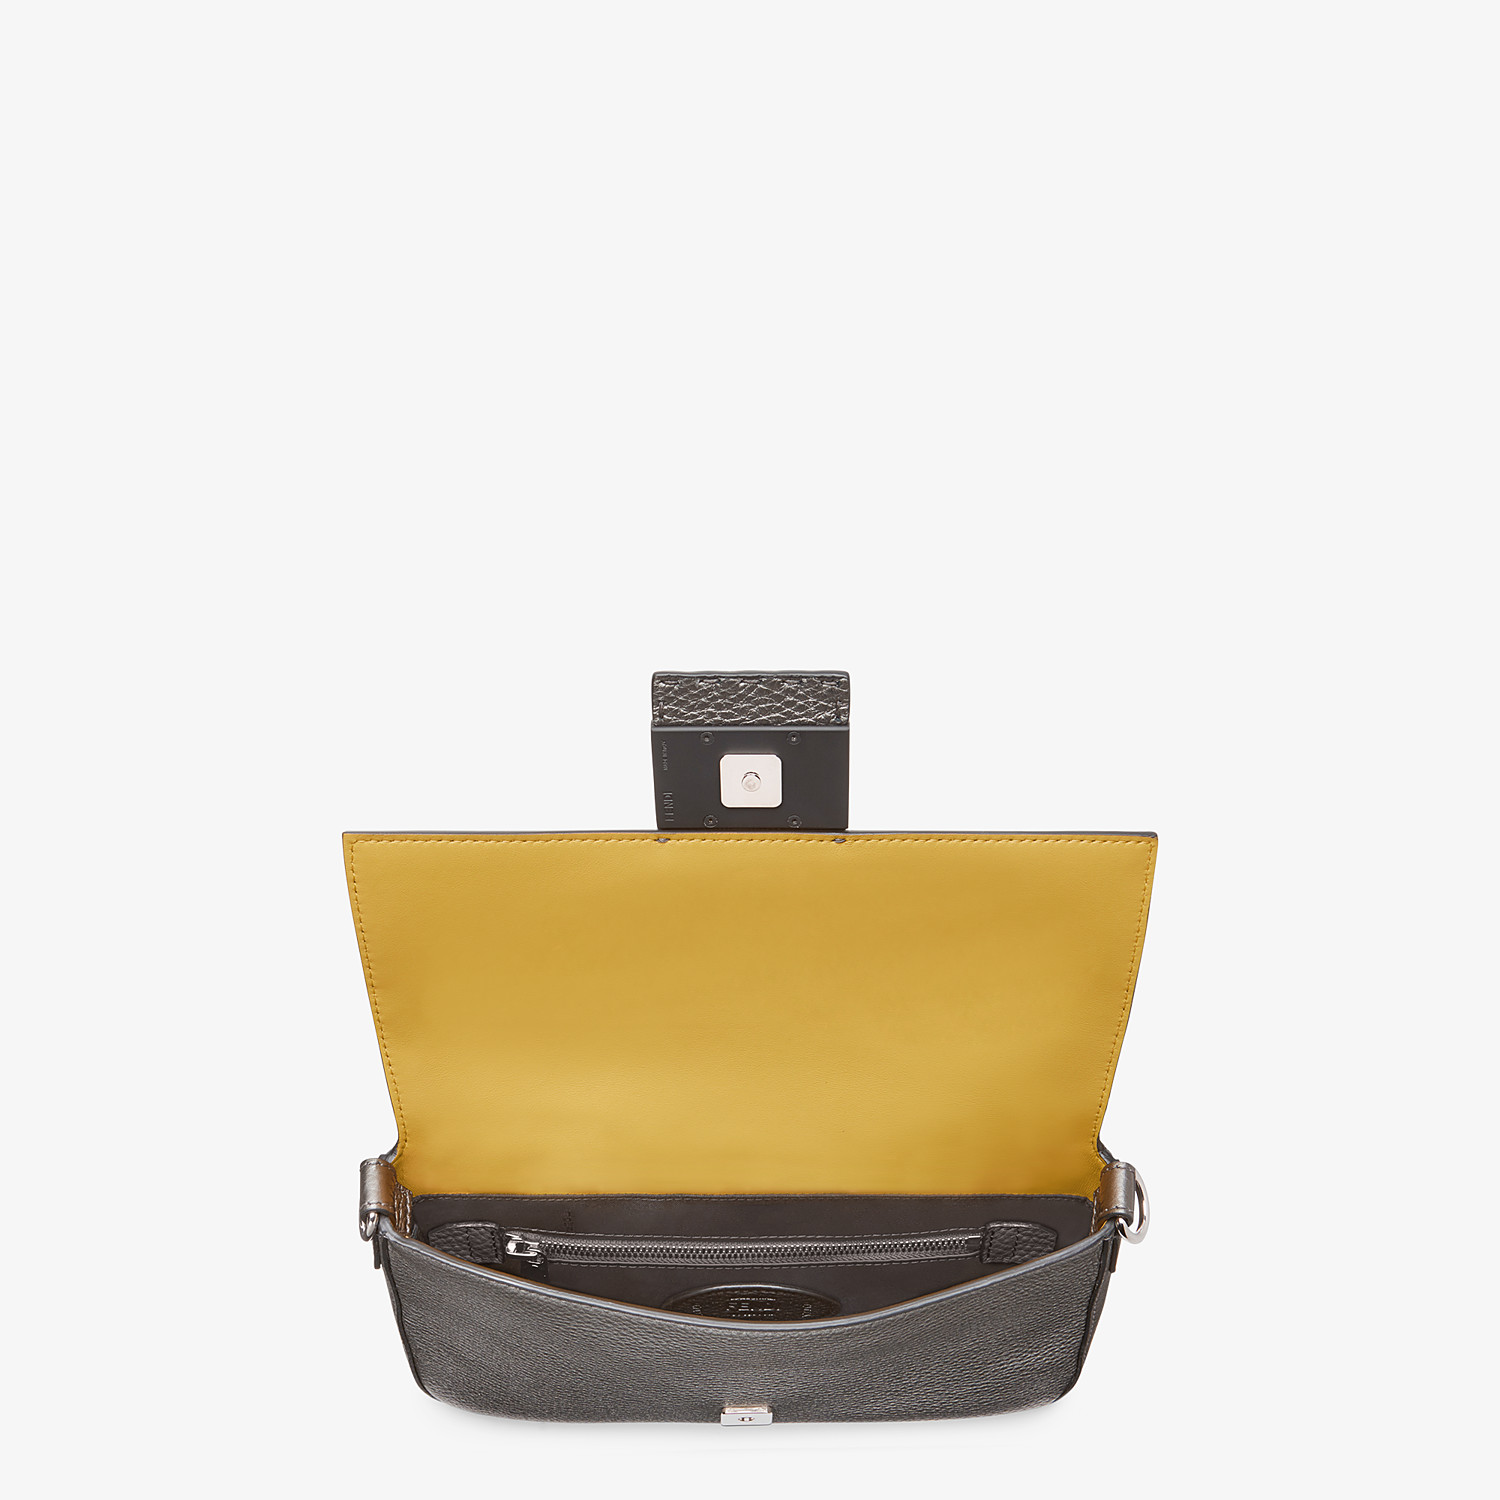 FENDI BAGUETTE - Grey leather bag - view 5 detail